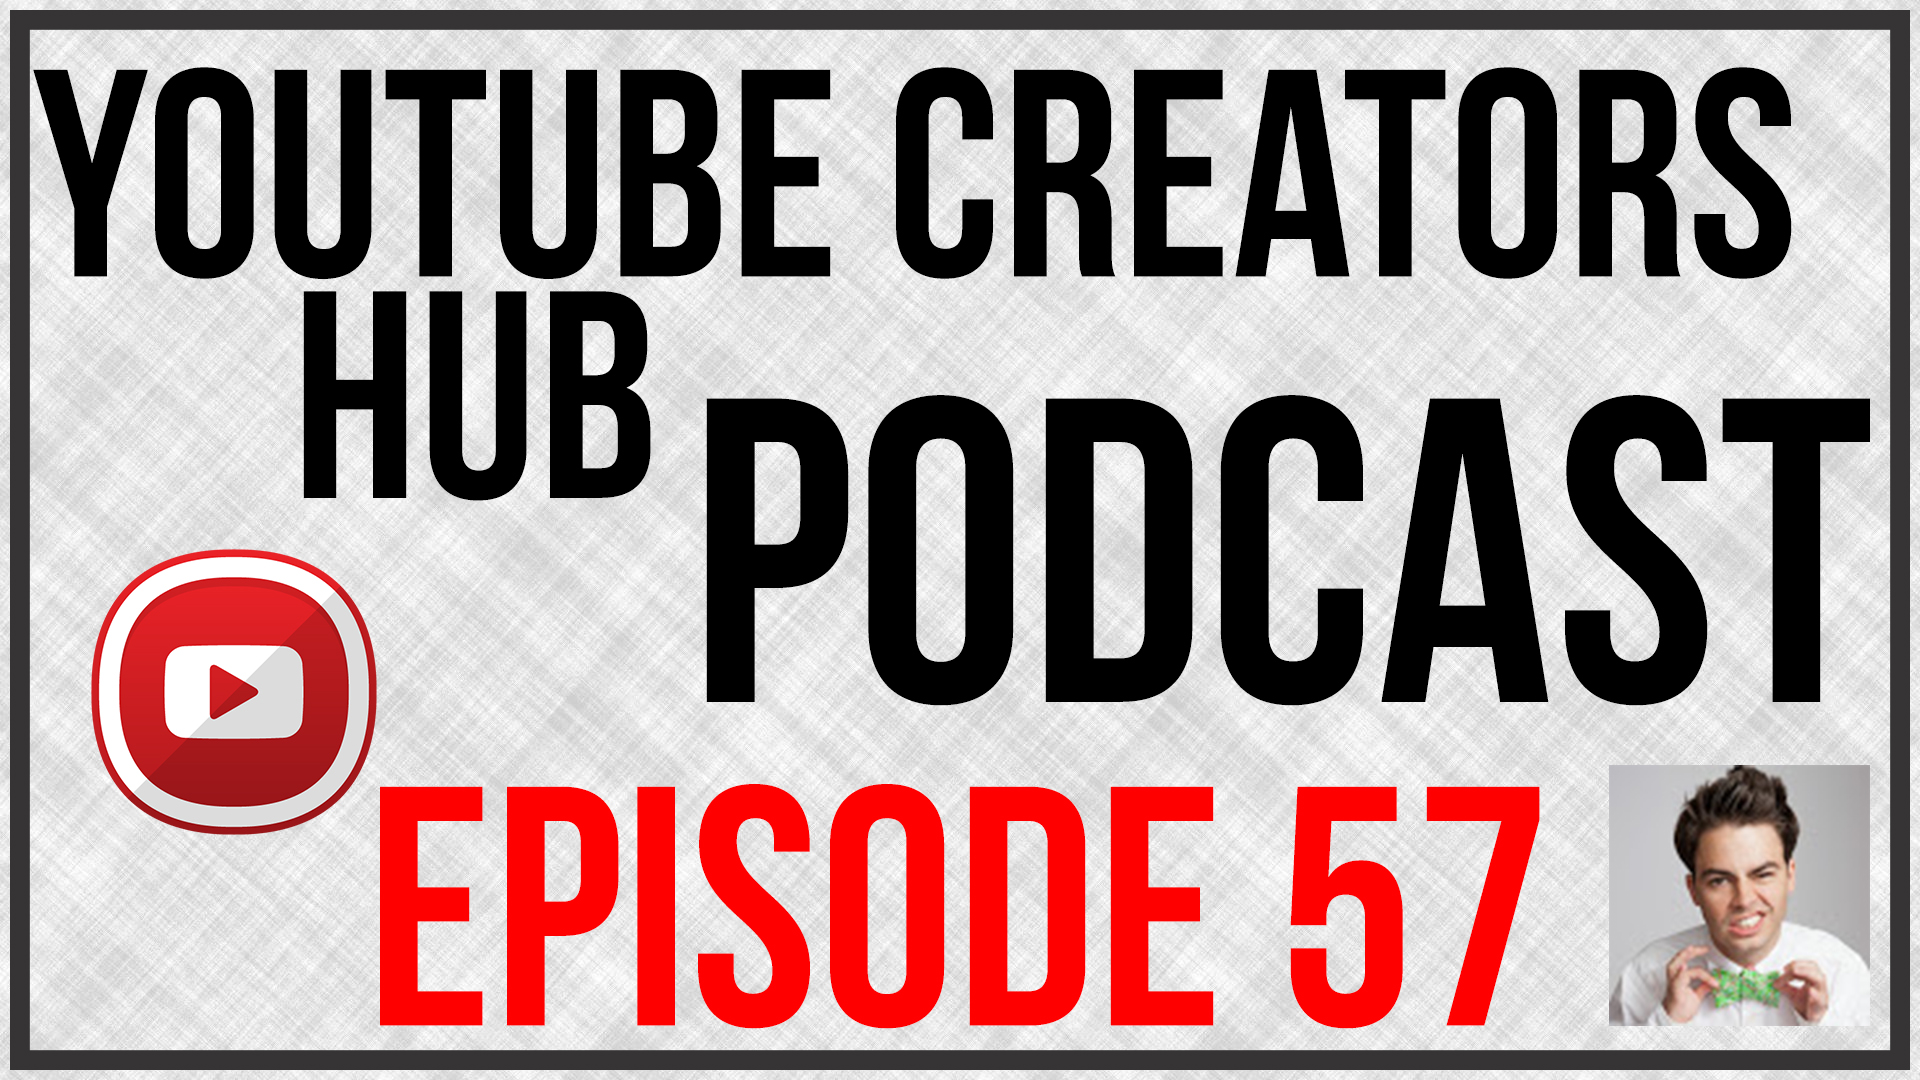 YouTube Creators Hub Episode 57